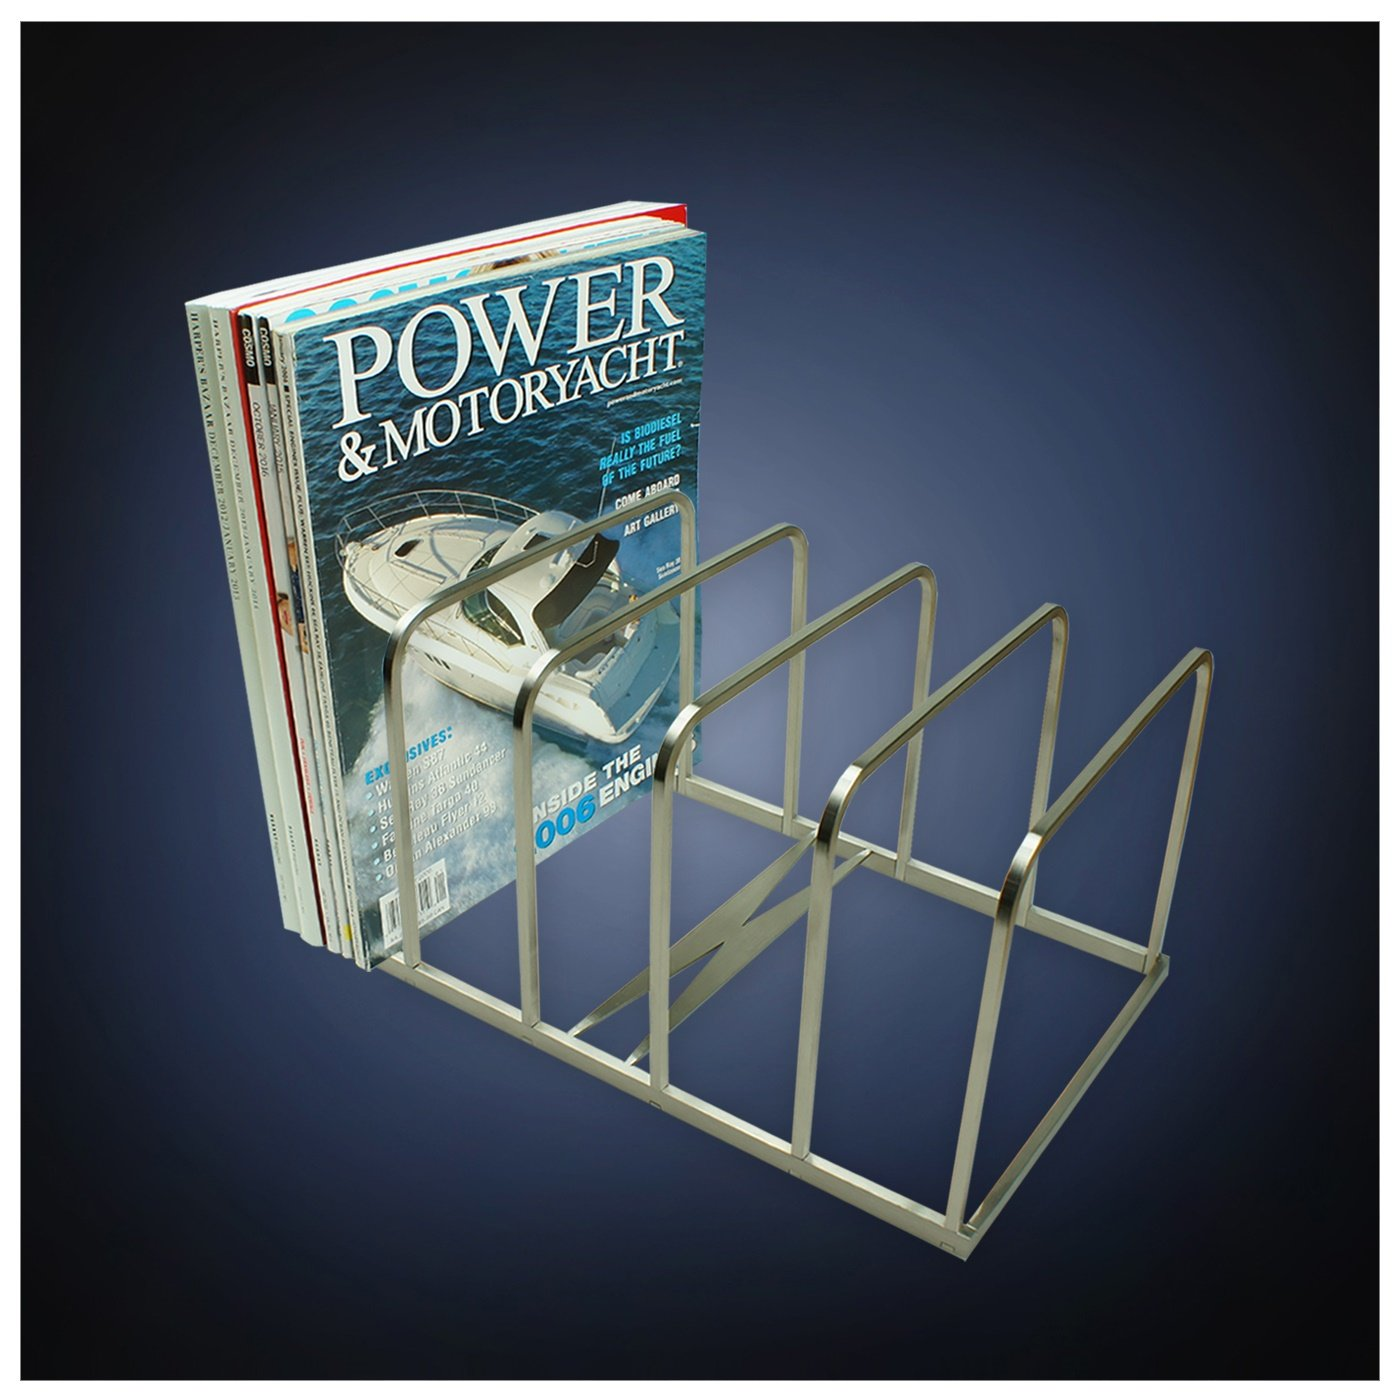 steel satin finish magazine holder binder mail letter document memo book organizer stand rack desk office accessory christmas gift office products